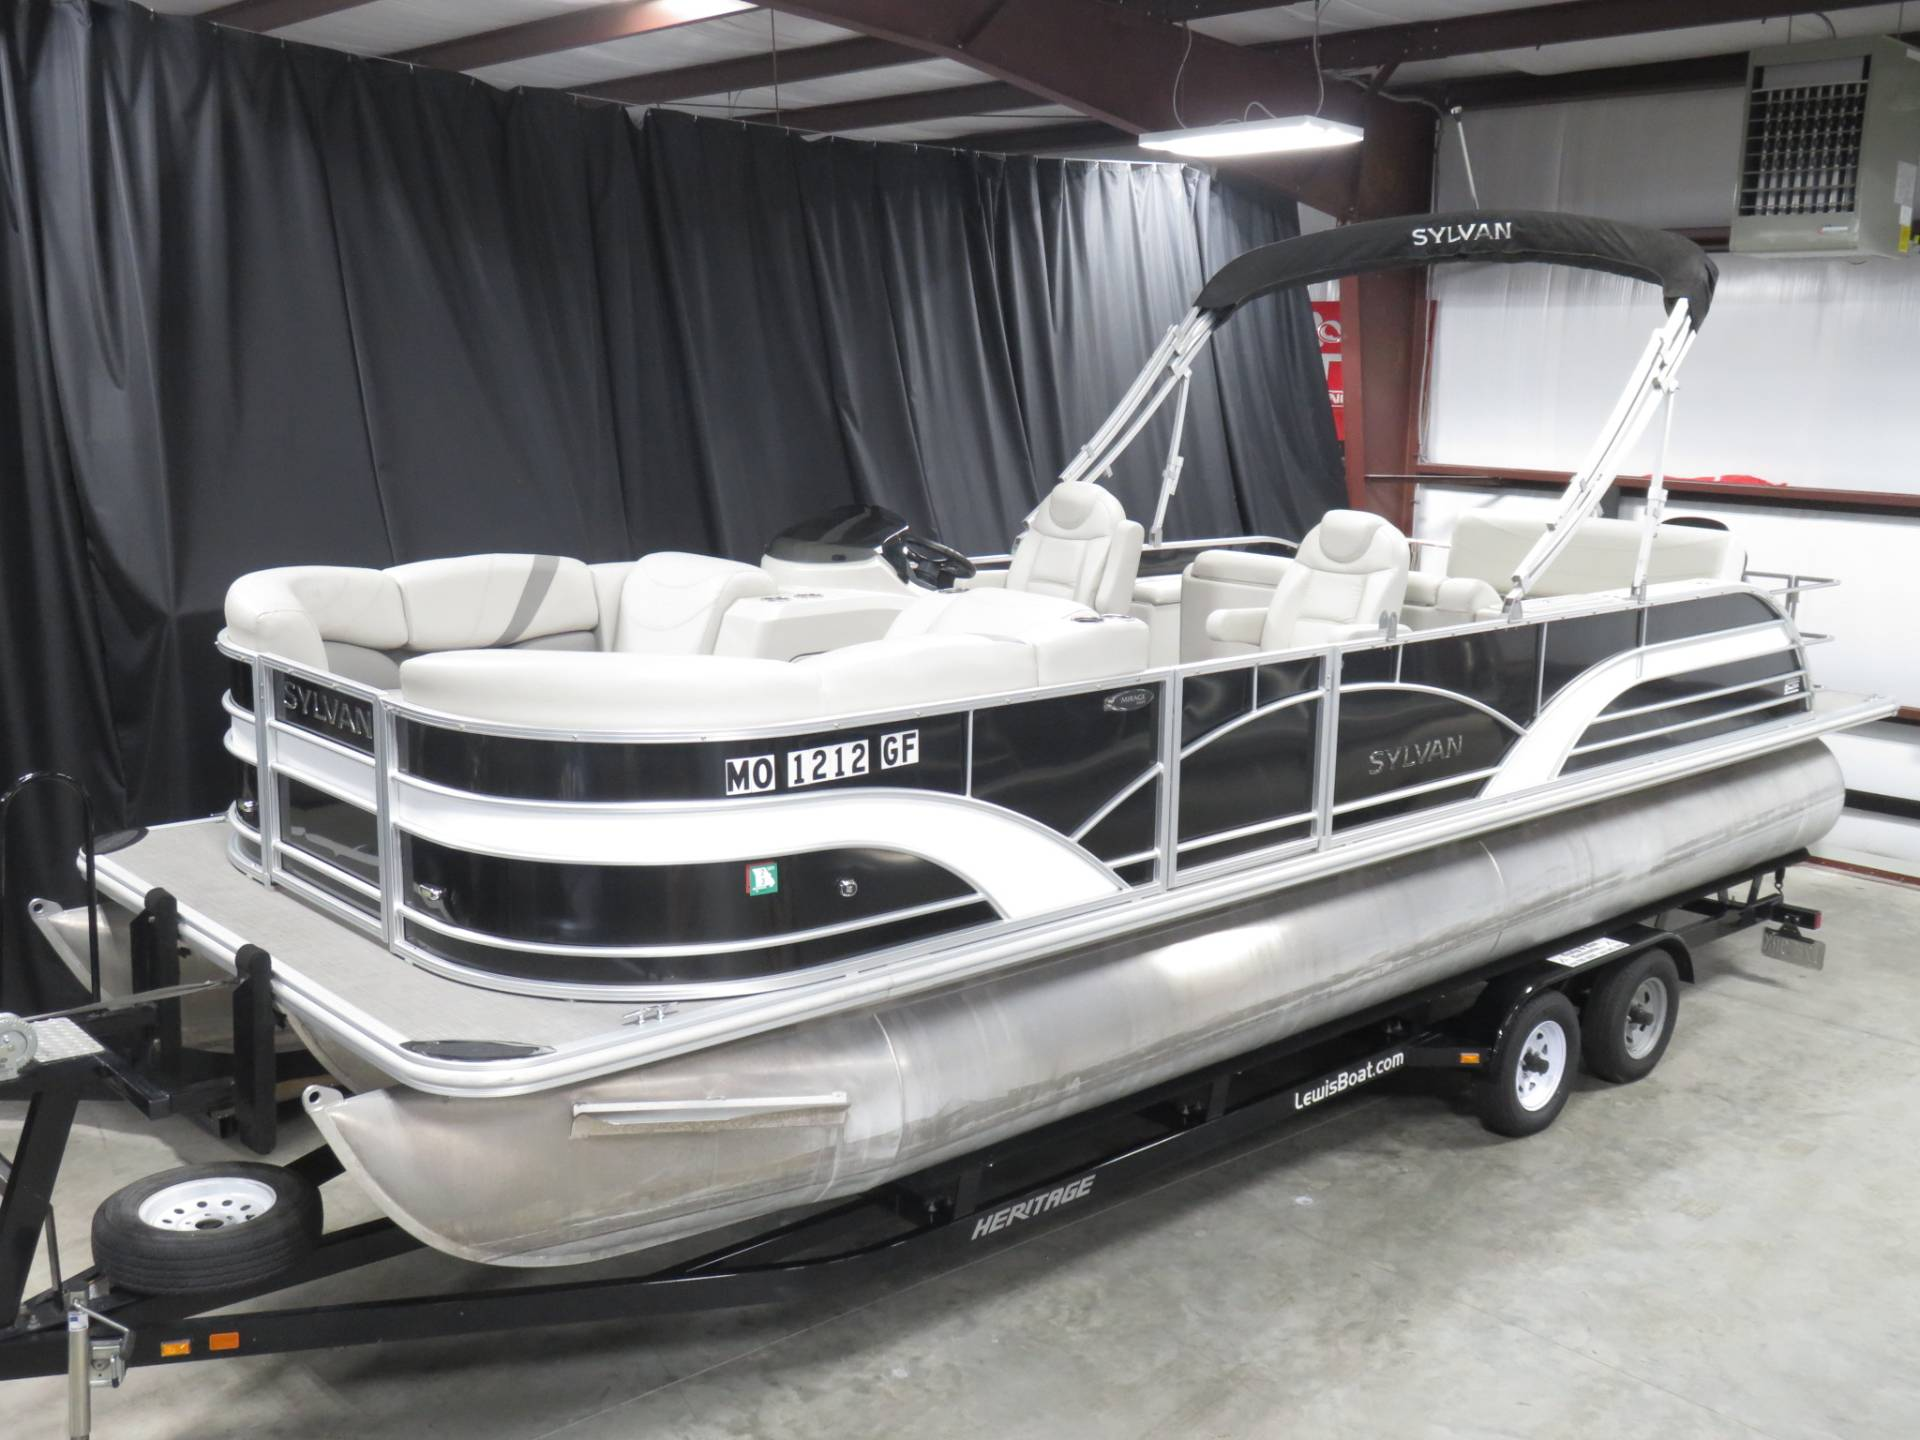 2017 Sylvan MIRAGE 8524 DLZ LES in Saint Peters, Missouri - Photo 1